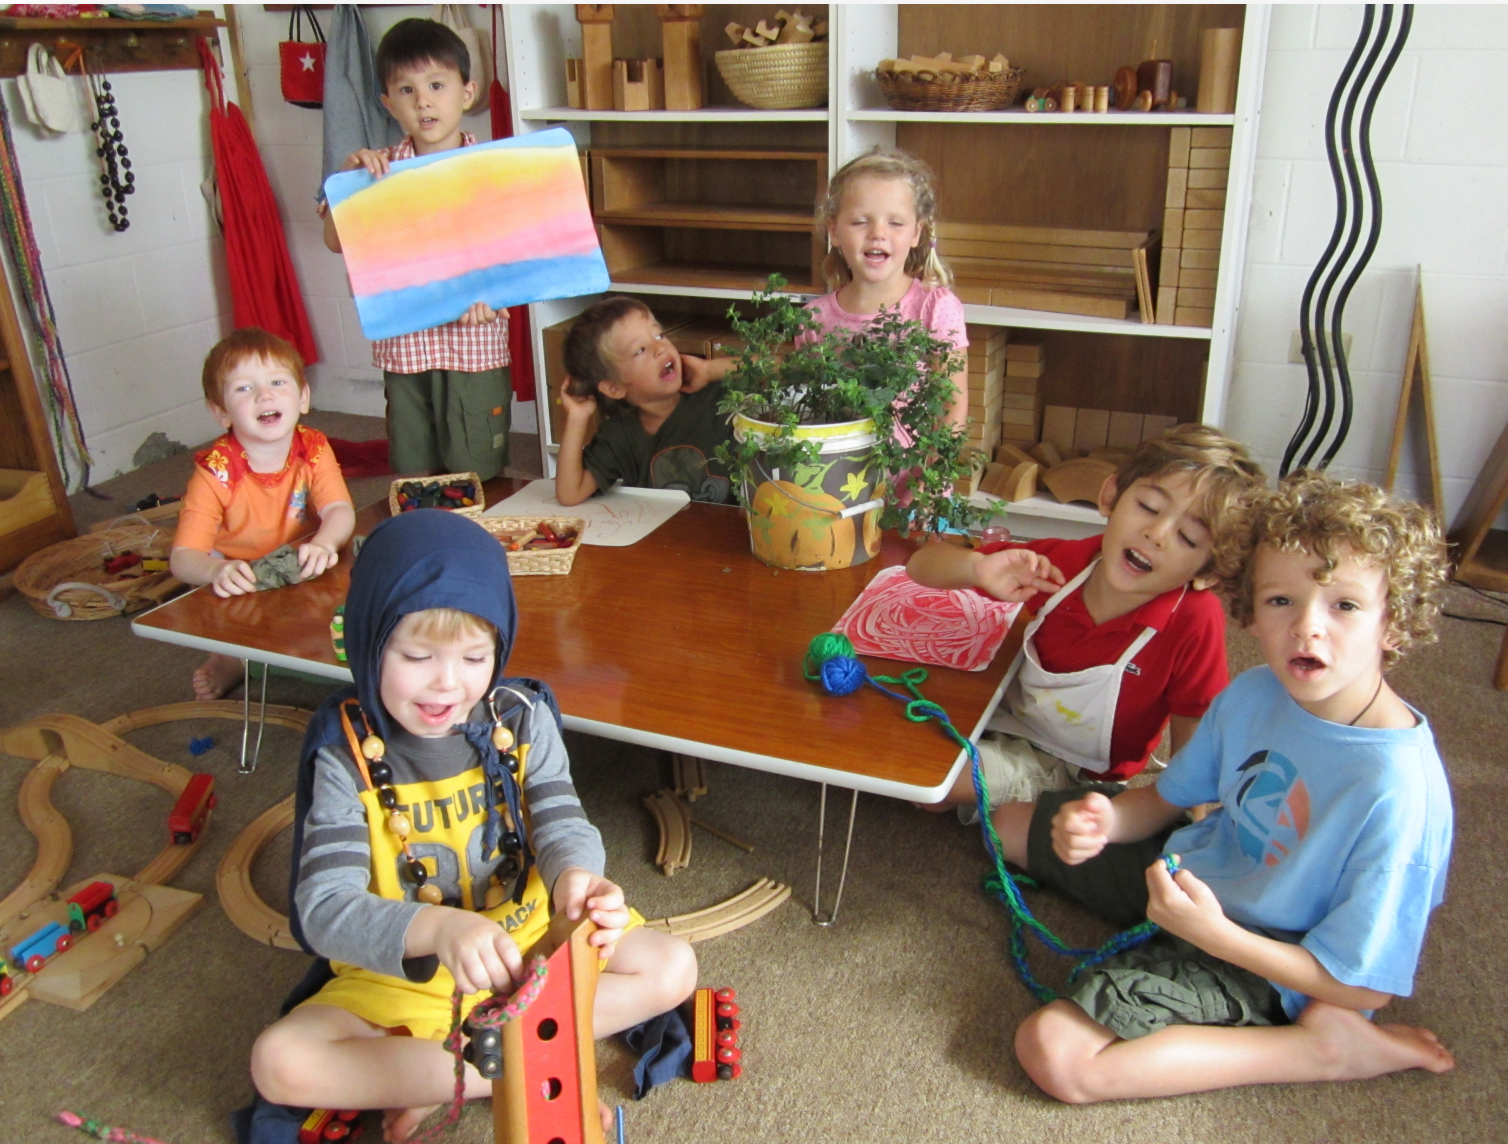 Children share some of the things they make at The Green Preschool in Kailua.